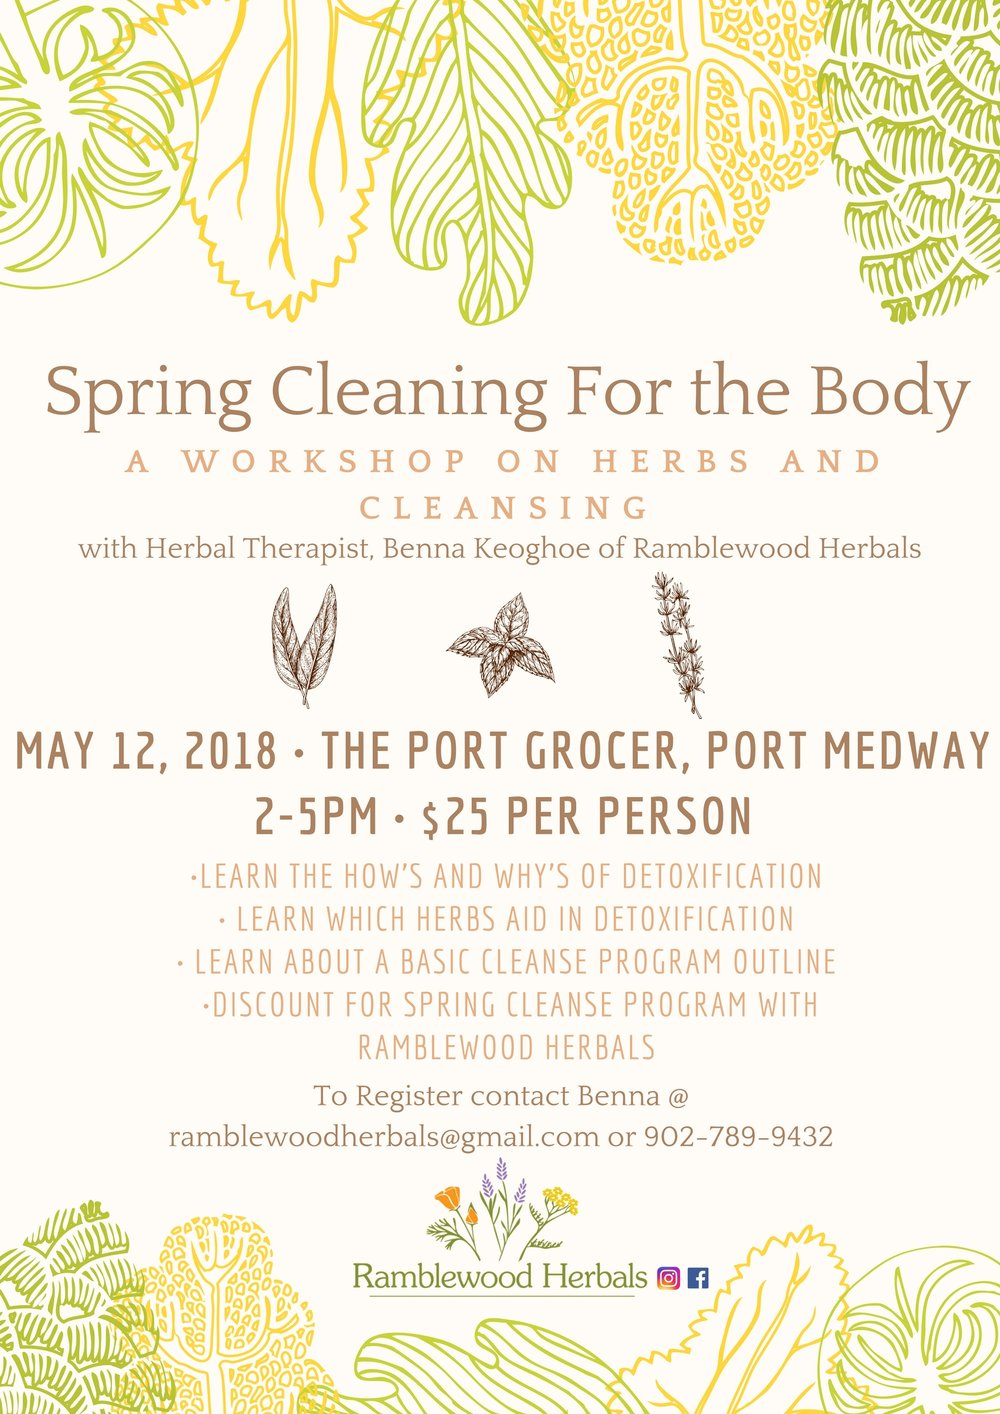 Spring Cleaning For the Body-PG-1.jpg